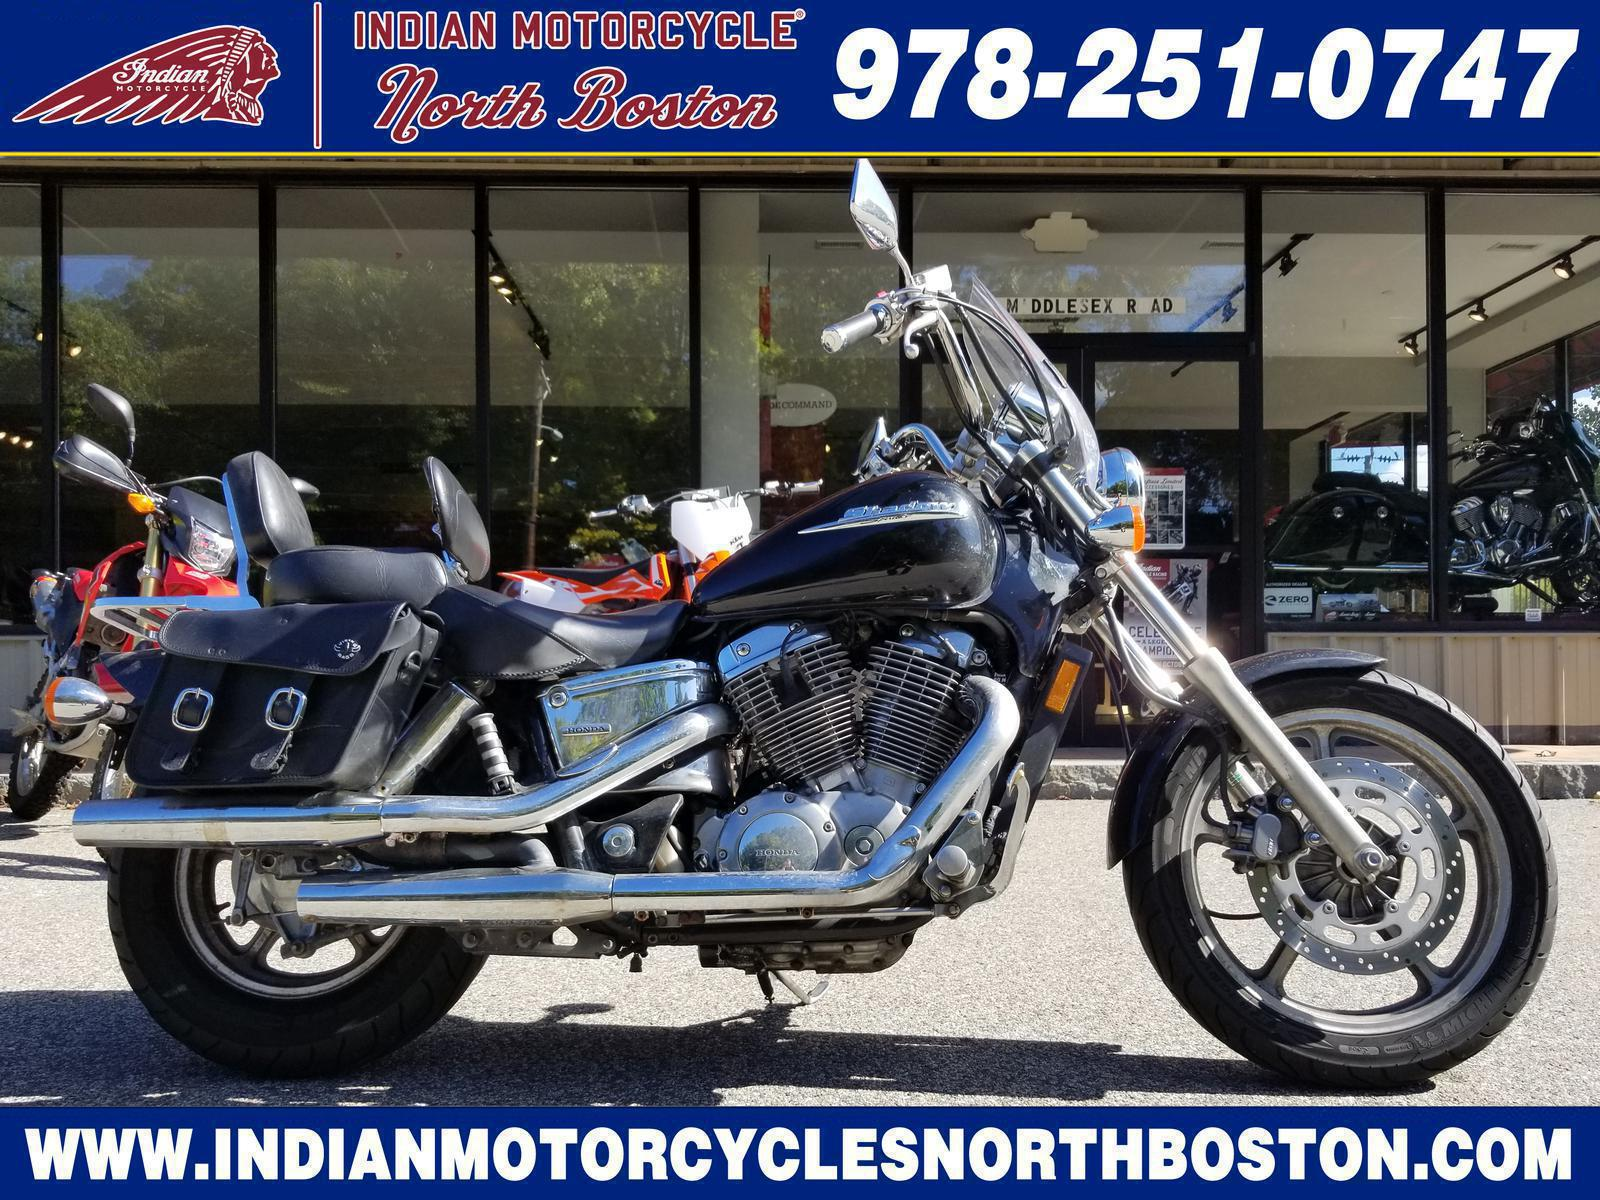 Inventory Indian Motorcycle of North Boston Tyngsboro, MA